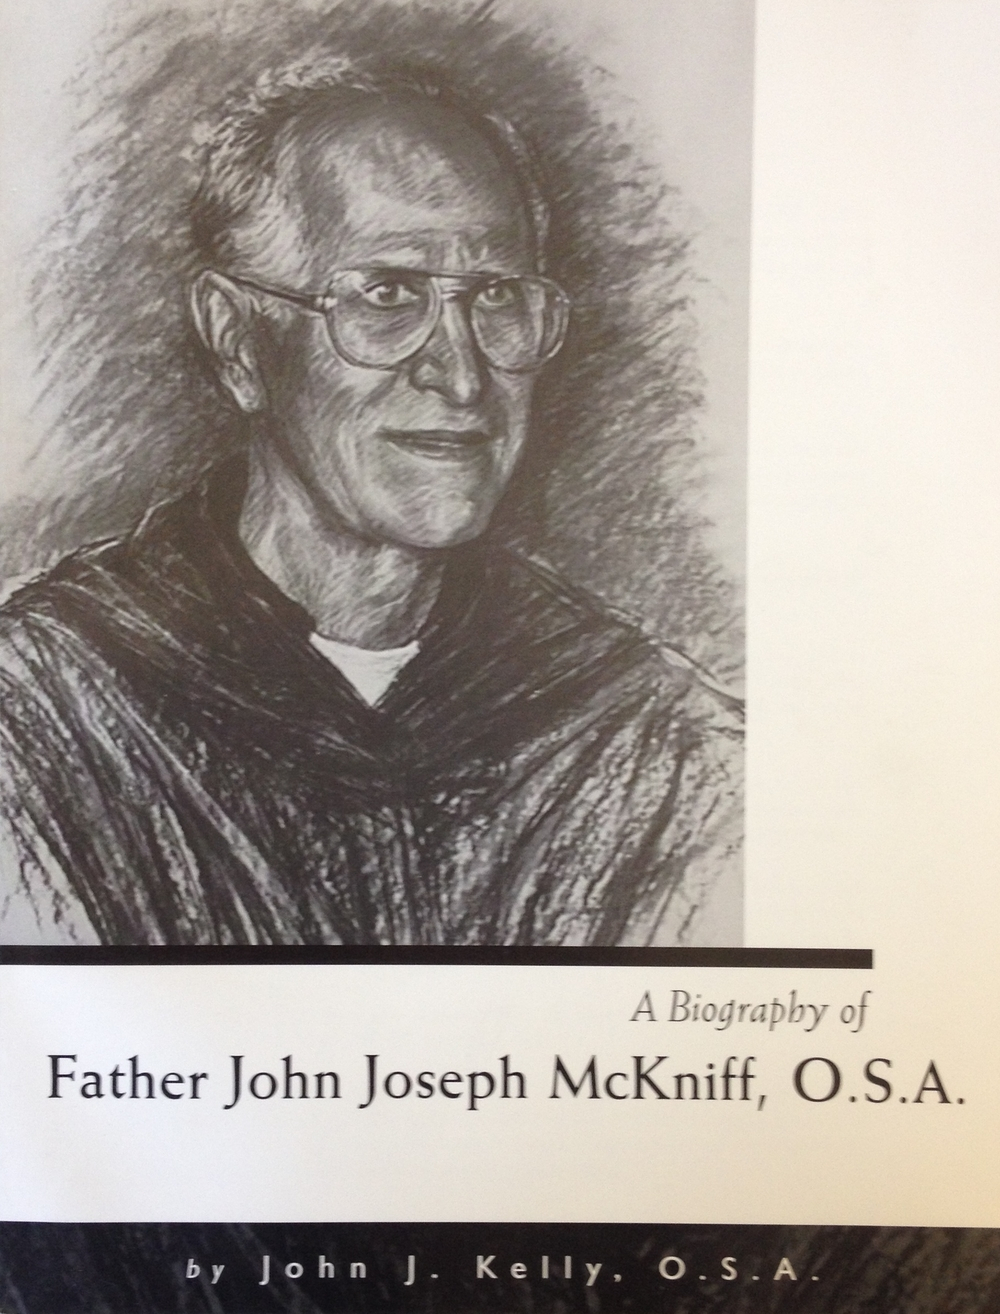 """A Biography of Father John Joseph McKniff, O.S.A.by John J. Kelly, O.S.A. is available. To obtain a copy, send check or money order for $10(U. S. Funds only - Payable to """"Augustinian Order"""") to:   Secretary of the Province Province of Our Mother of Good Counsel 5401 S. Cornell Ave. Chicago, IL 60615-5664 (Shipped to U. S. addresses only.)"""